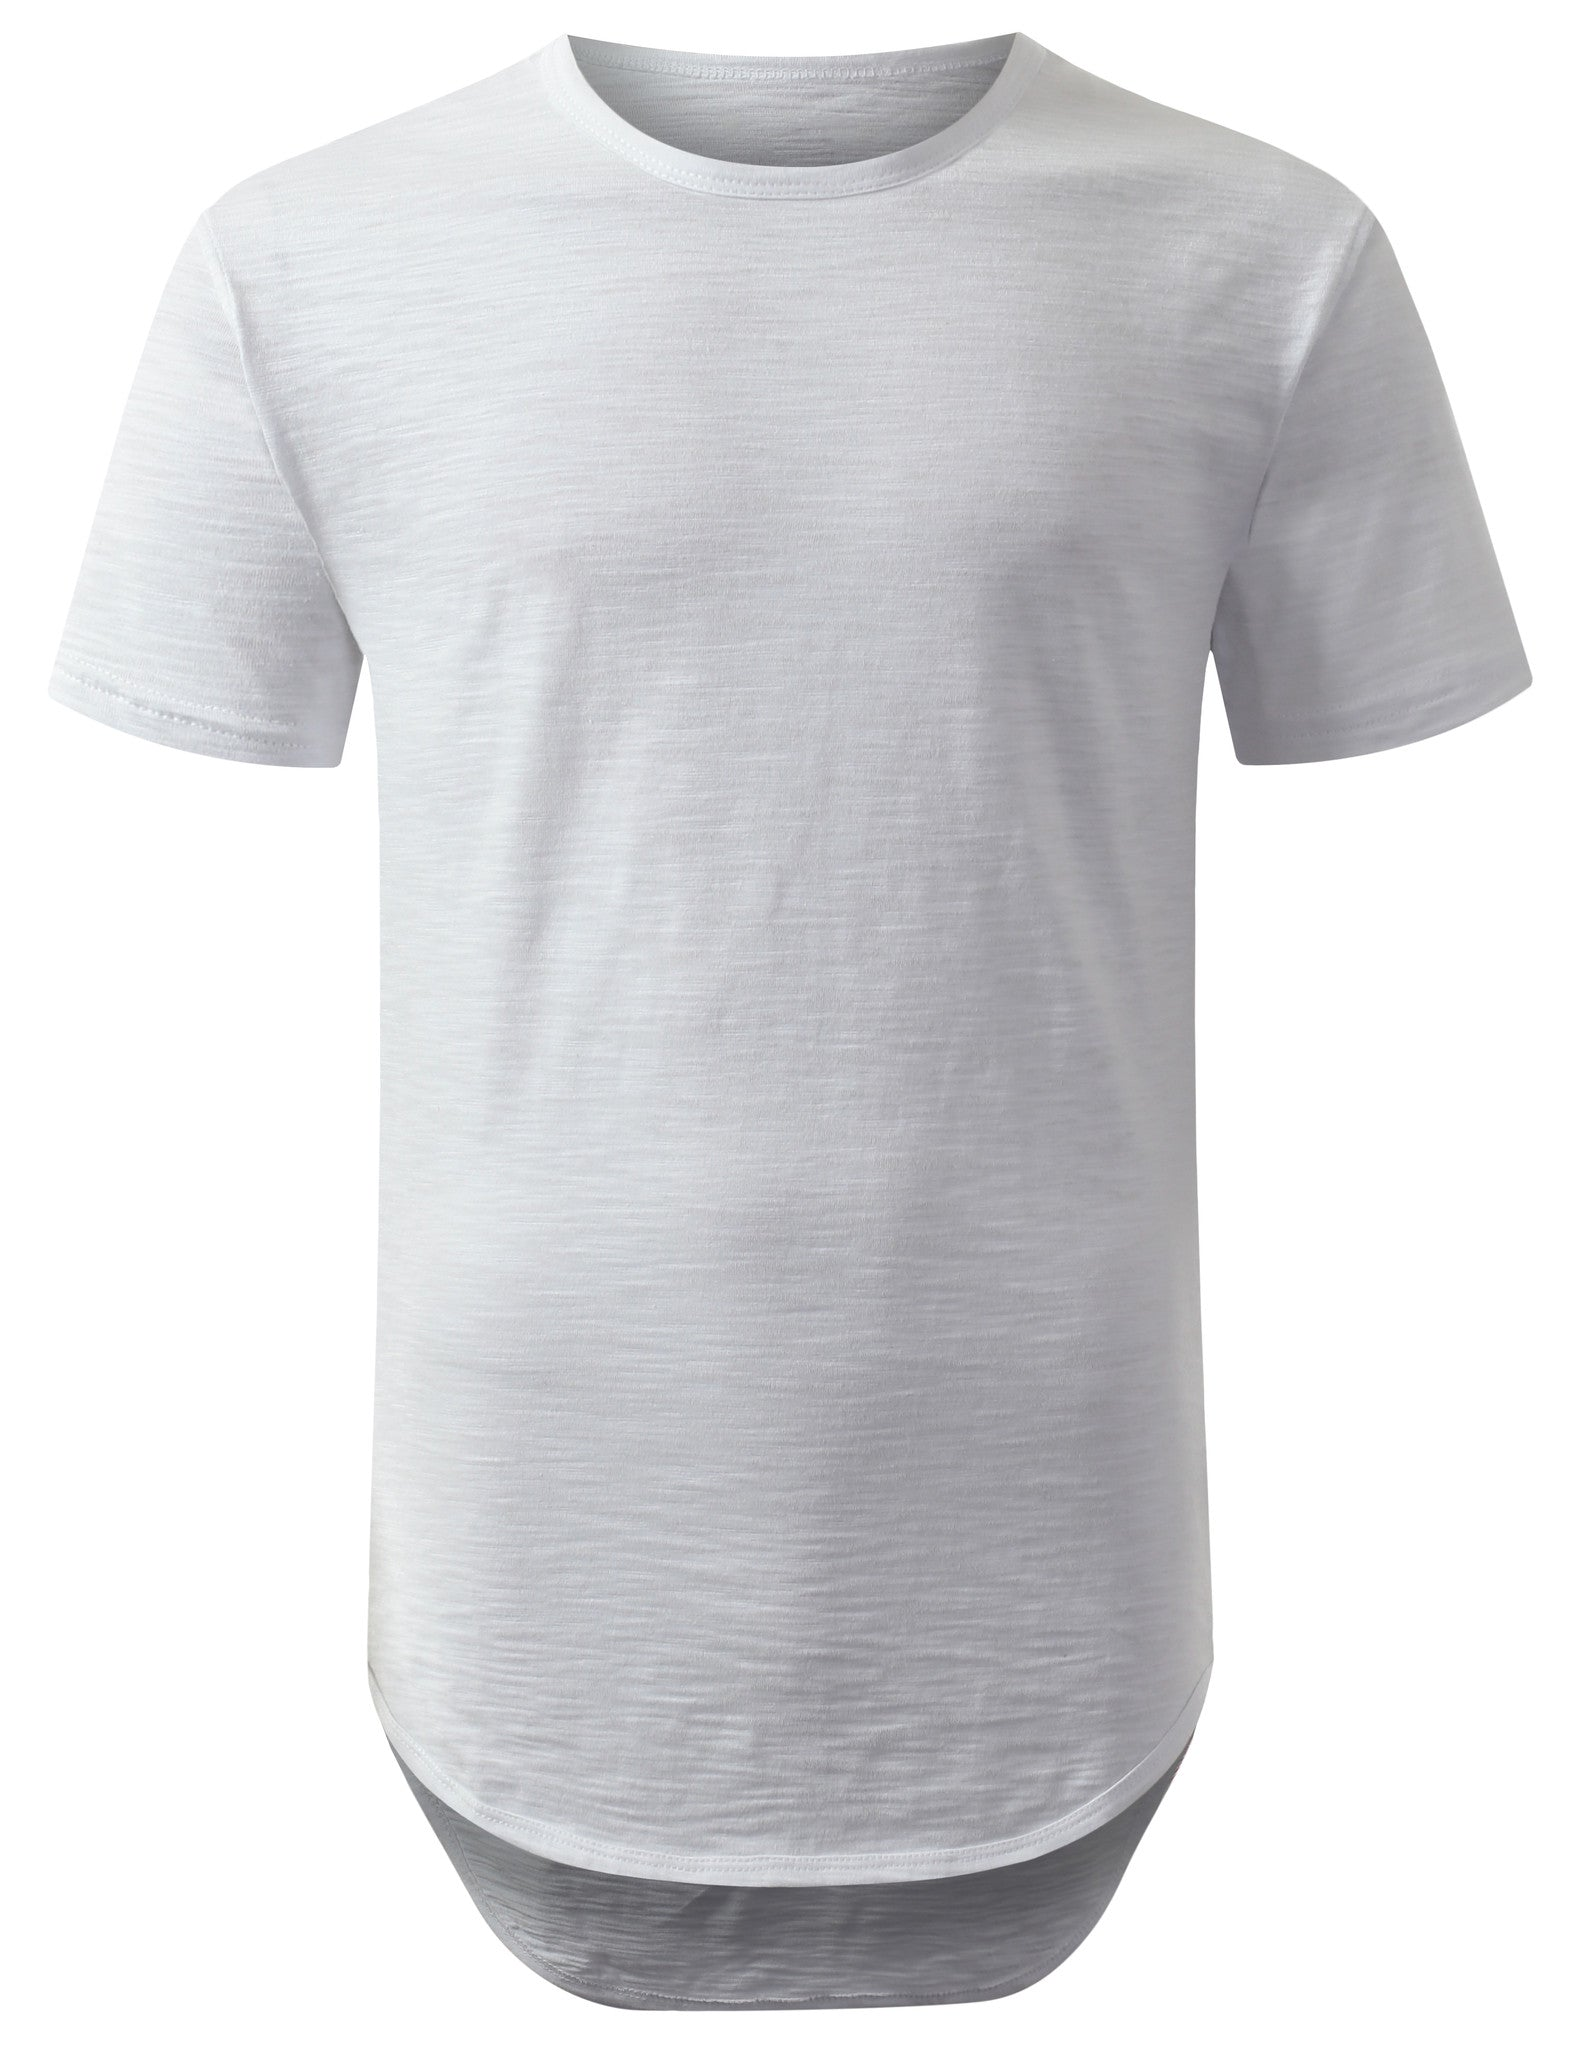 WHITE 2 Tone Weaved Longline Tshirt - URBANCREWS